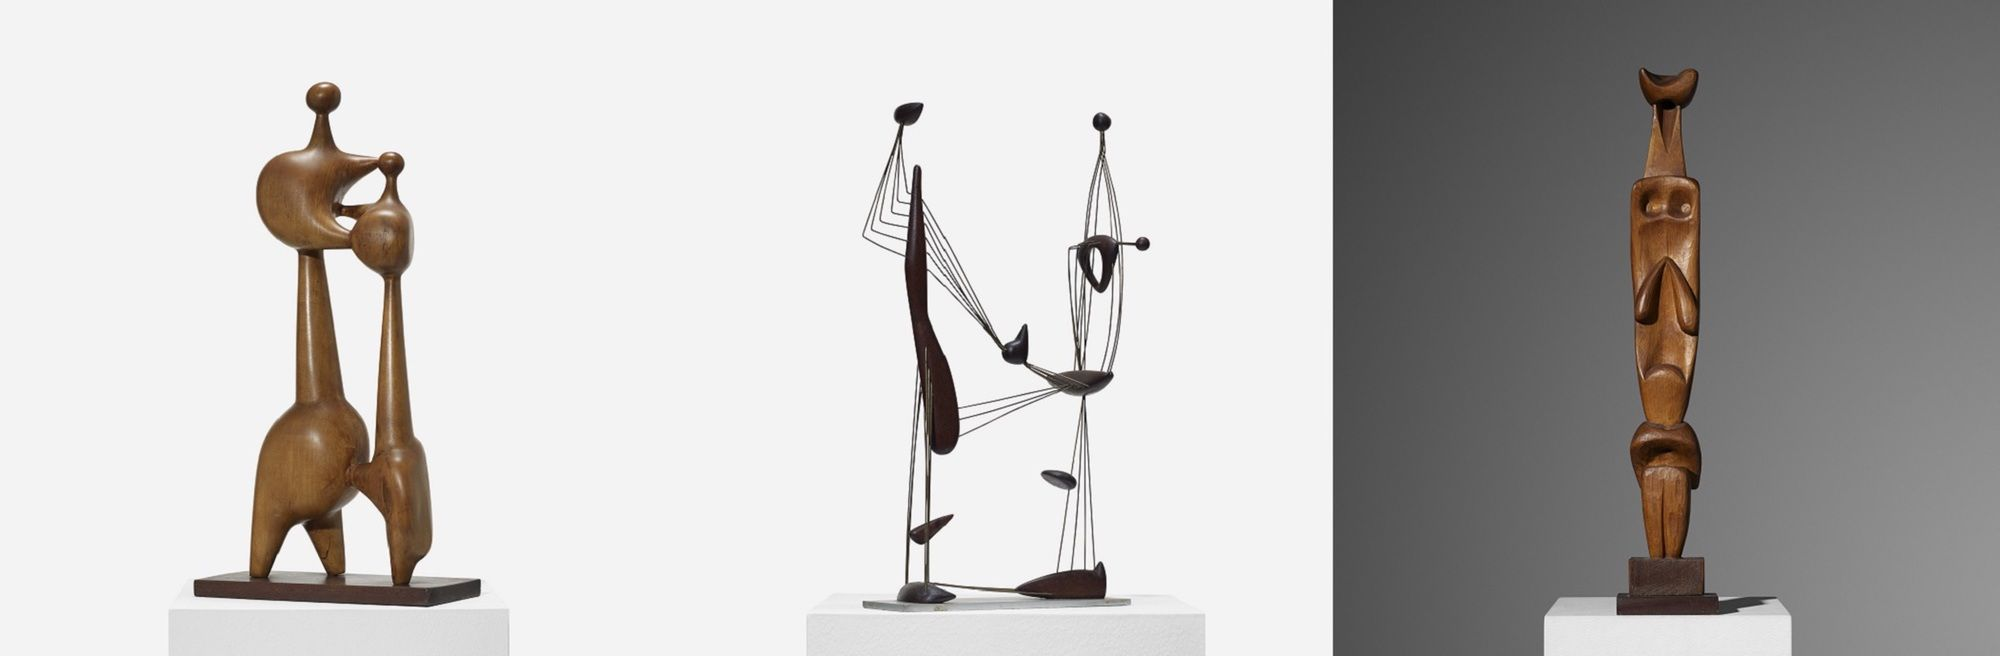 Item 173,174 and 176. These sculptures are three of the nine rare artworks by Leo Amino that will be offered in this Design auction.